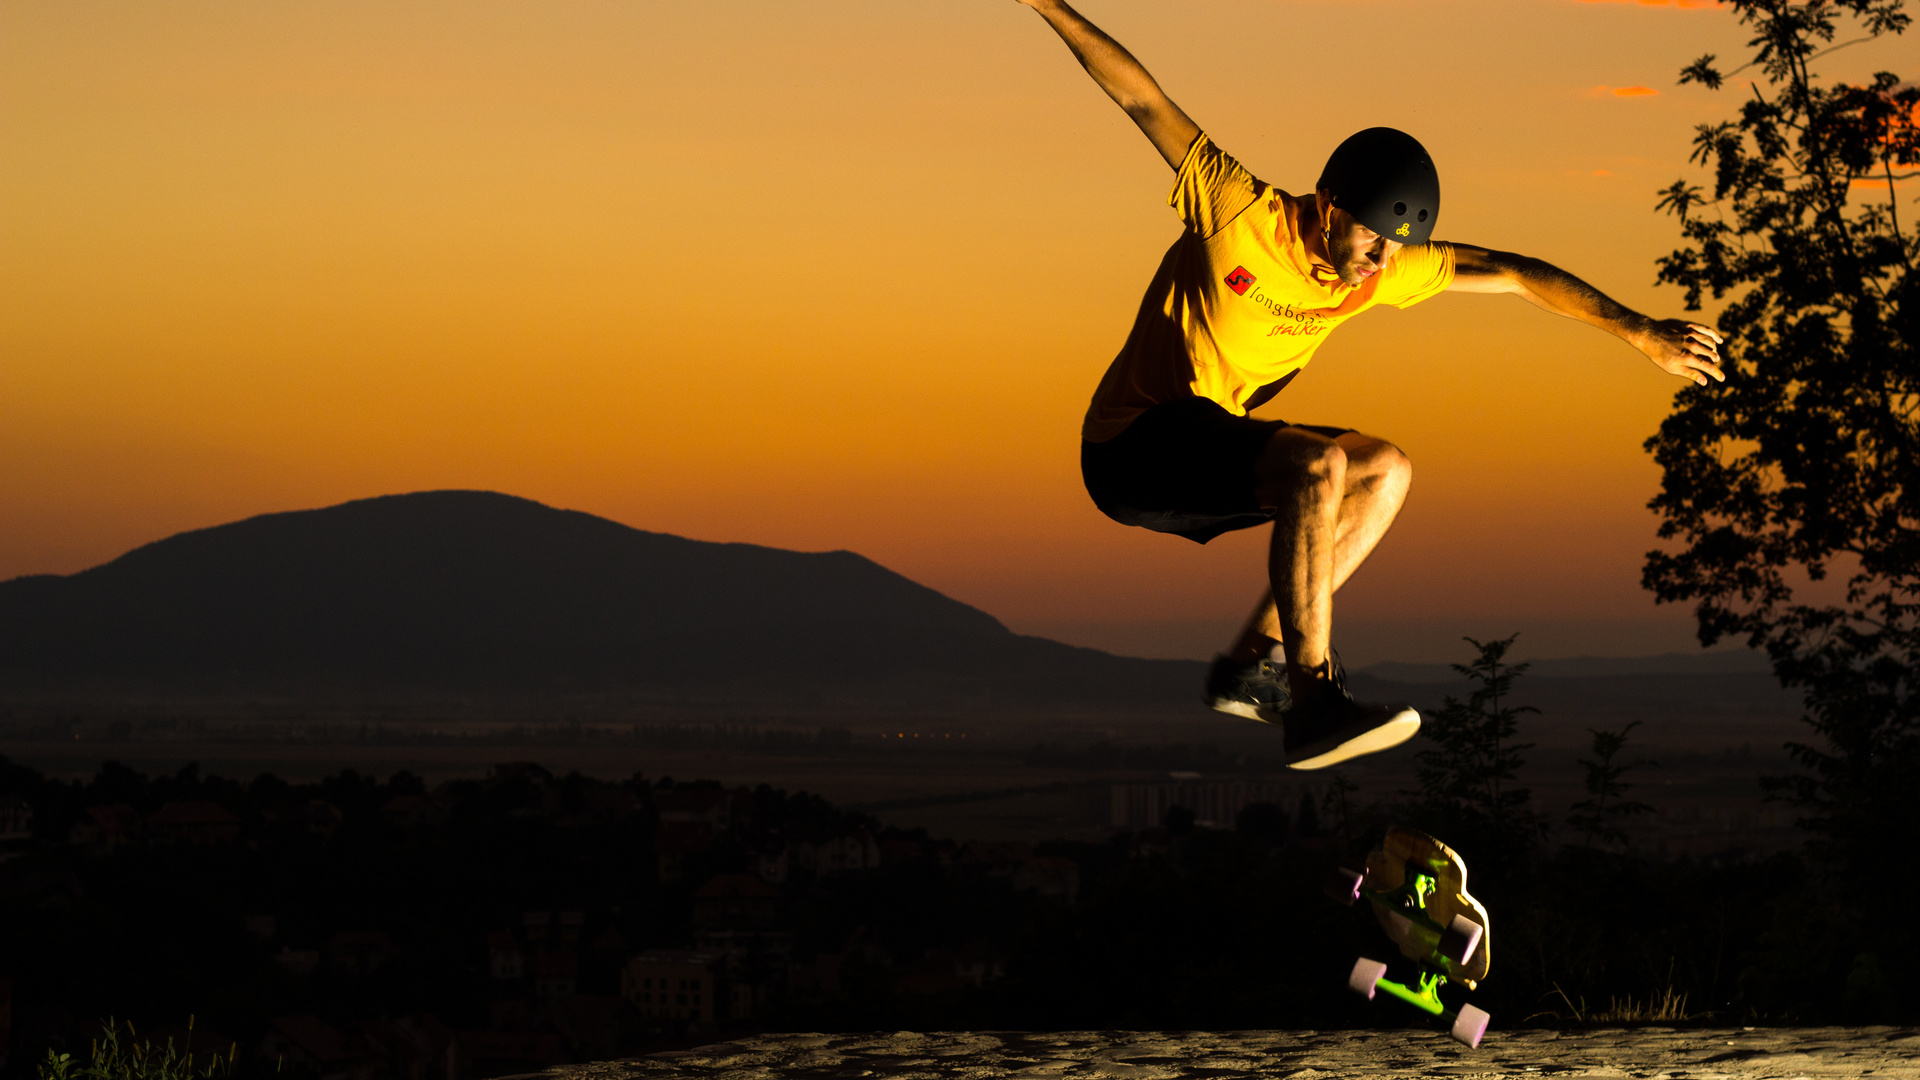 Skateboarding hd wallpapers Page 0 Wallpaper Screen 1920x1080